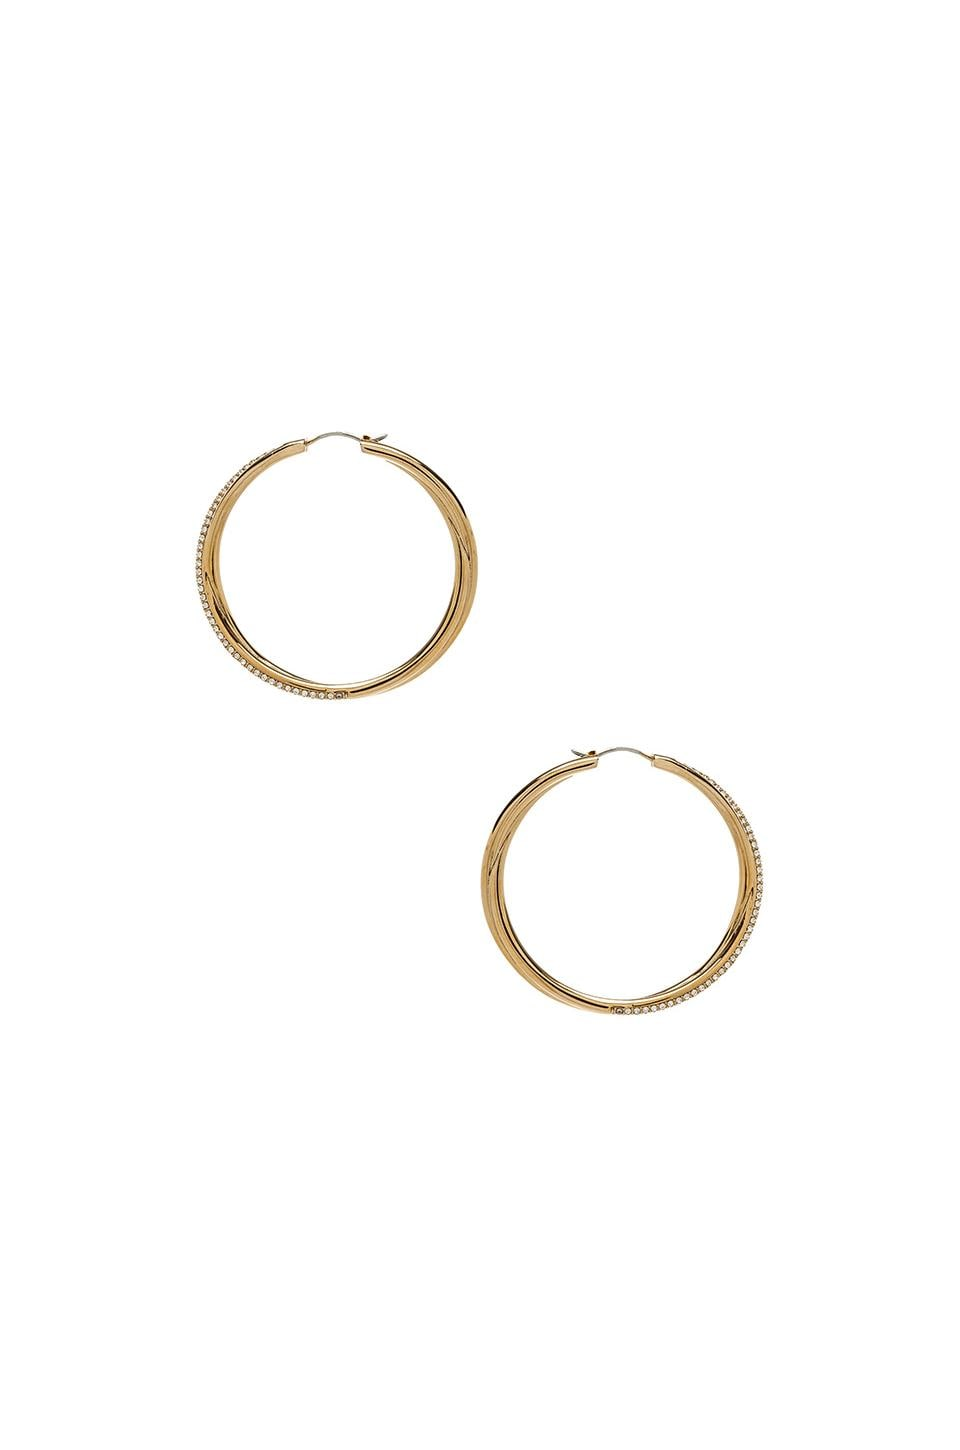 Michael Kors Brilliance Hoop Earrings in Gold